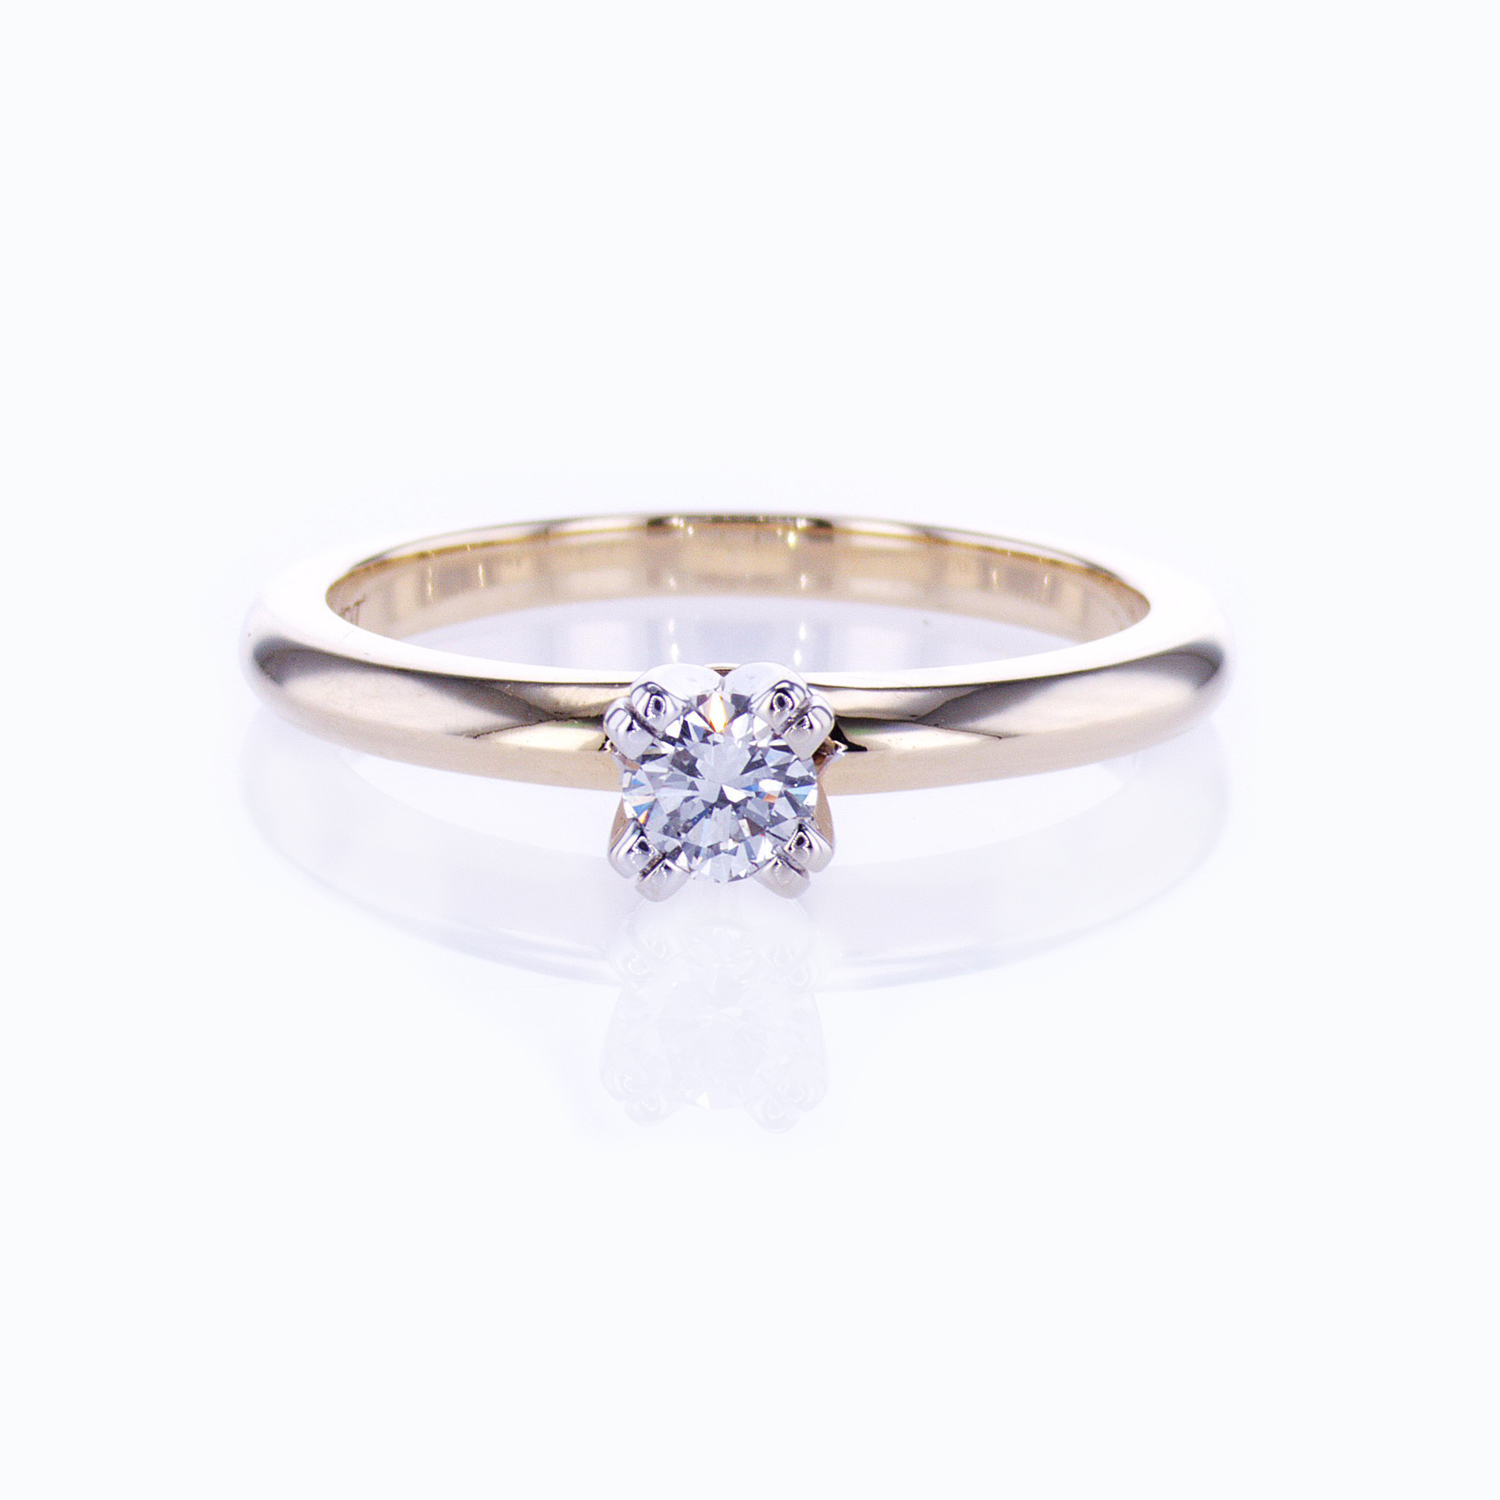 Double Prong Preset Diamond Solitaire Engagement Ring